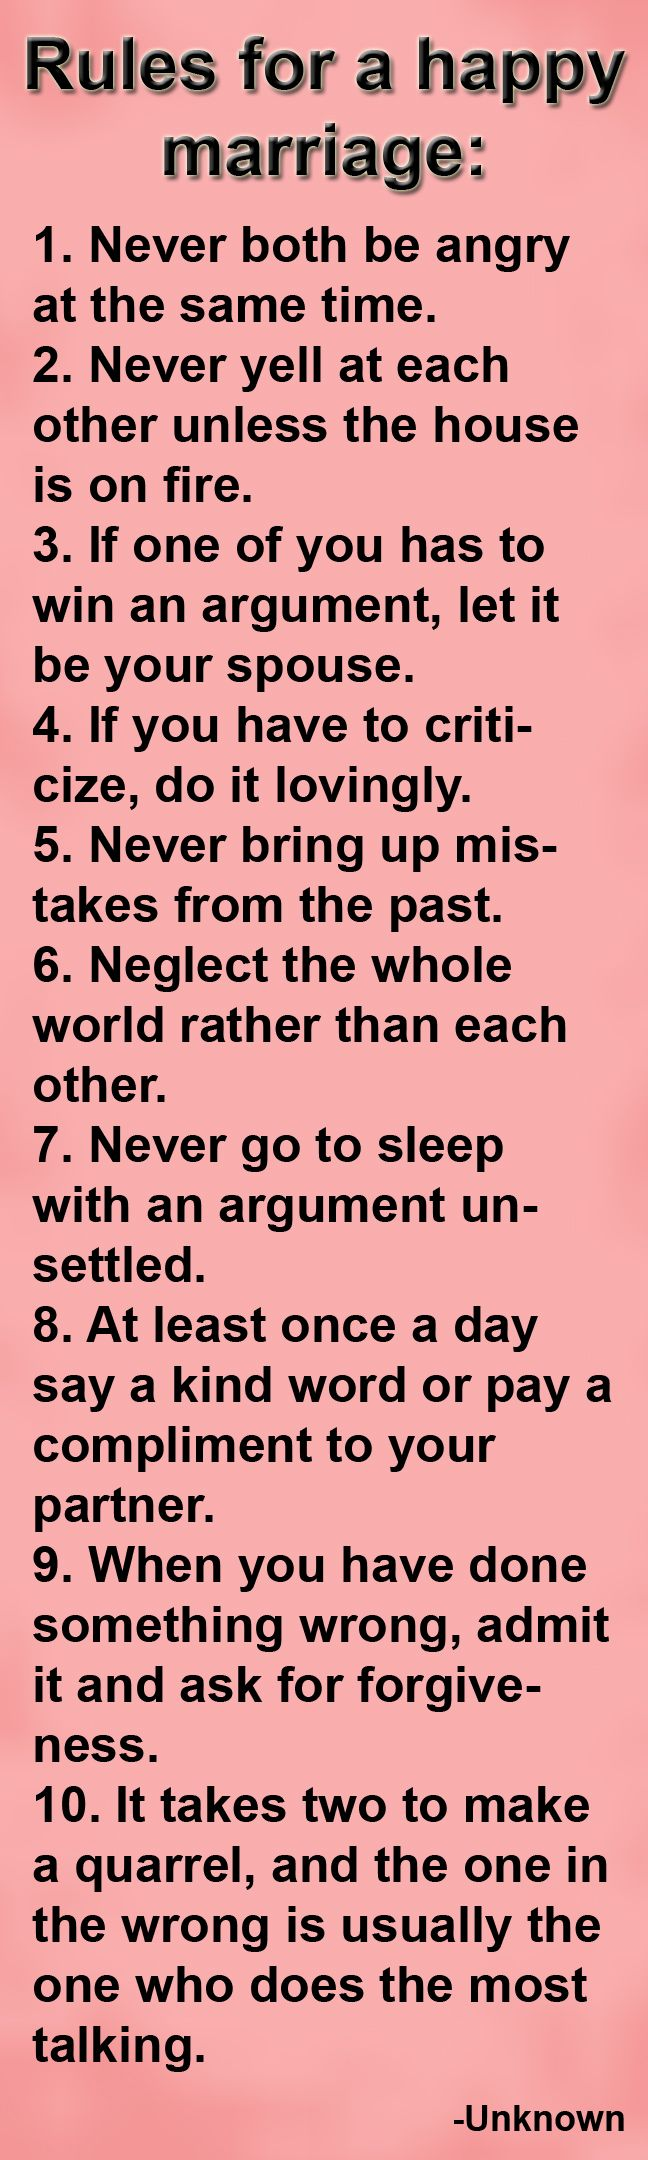 Rules for a happy